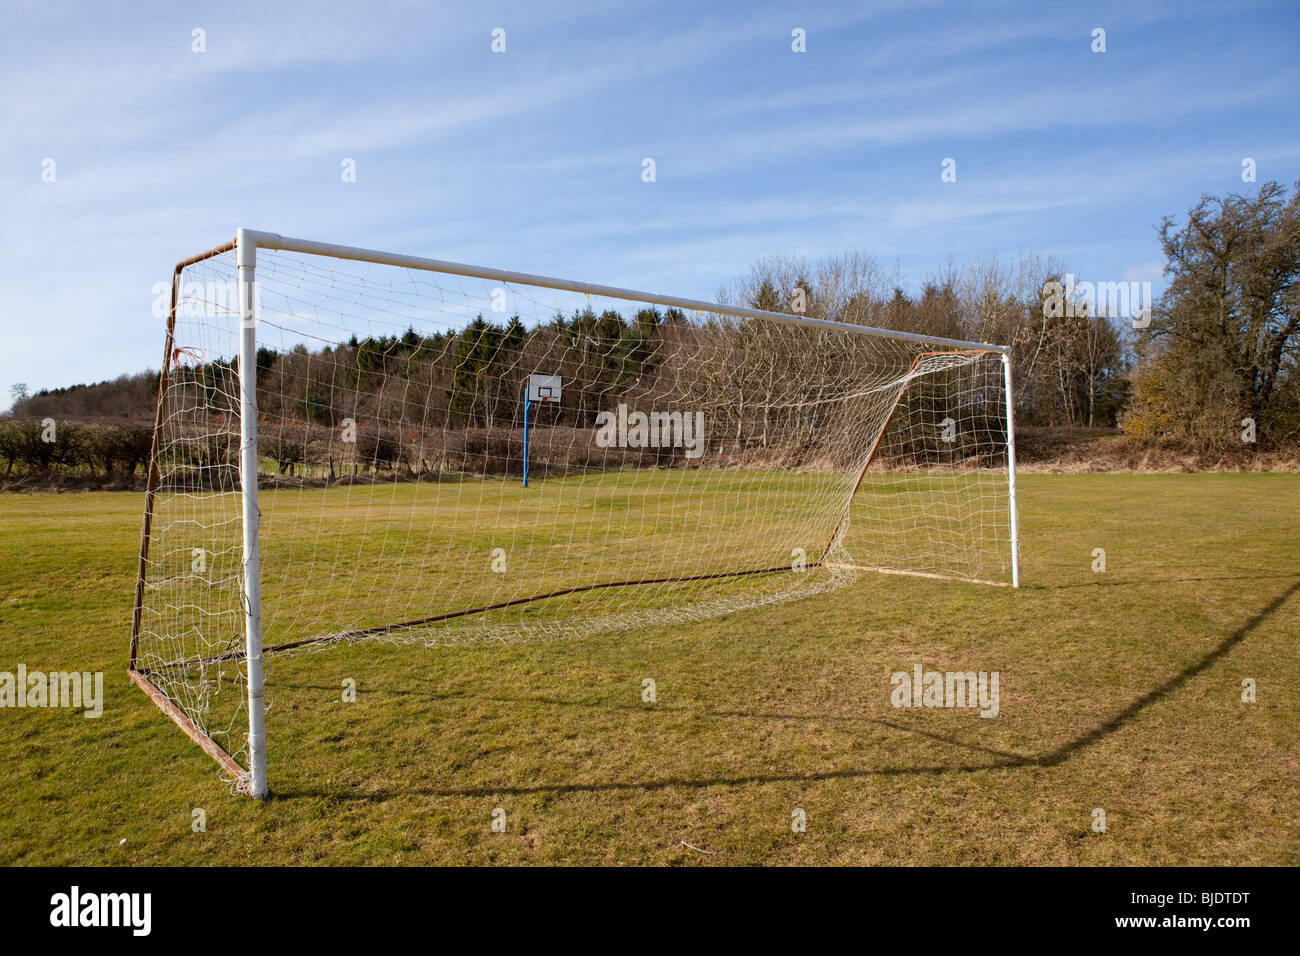 Nets and goalposts on an empty Sunday League Football pitch - Stock Image